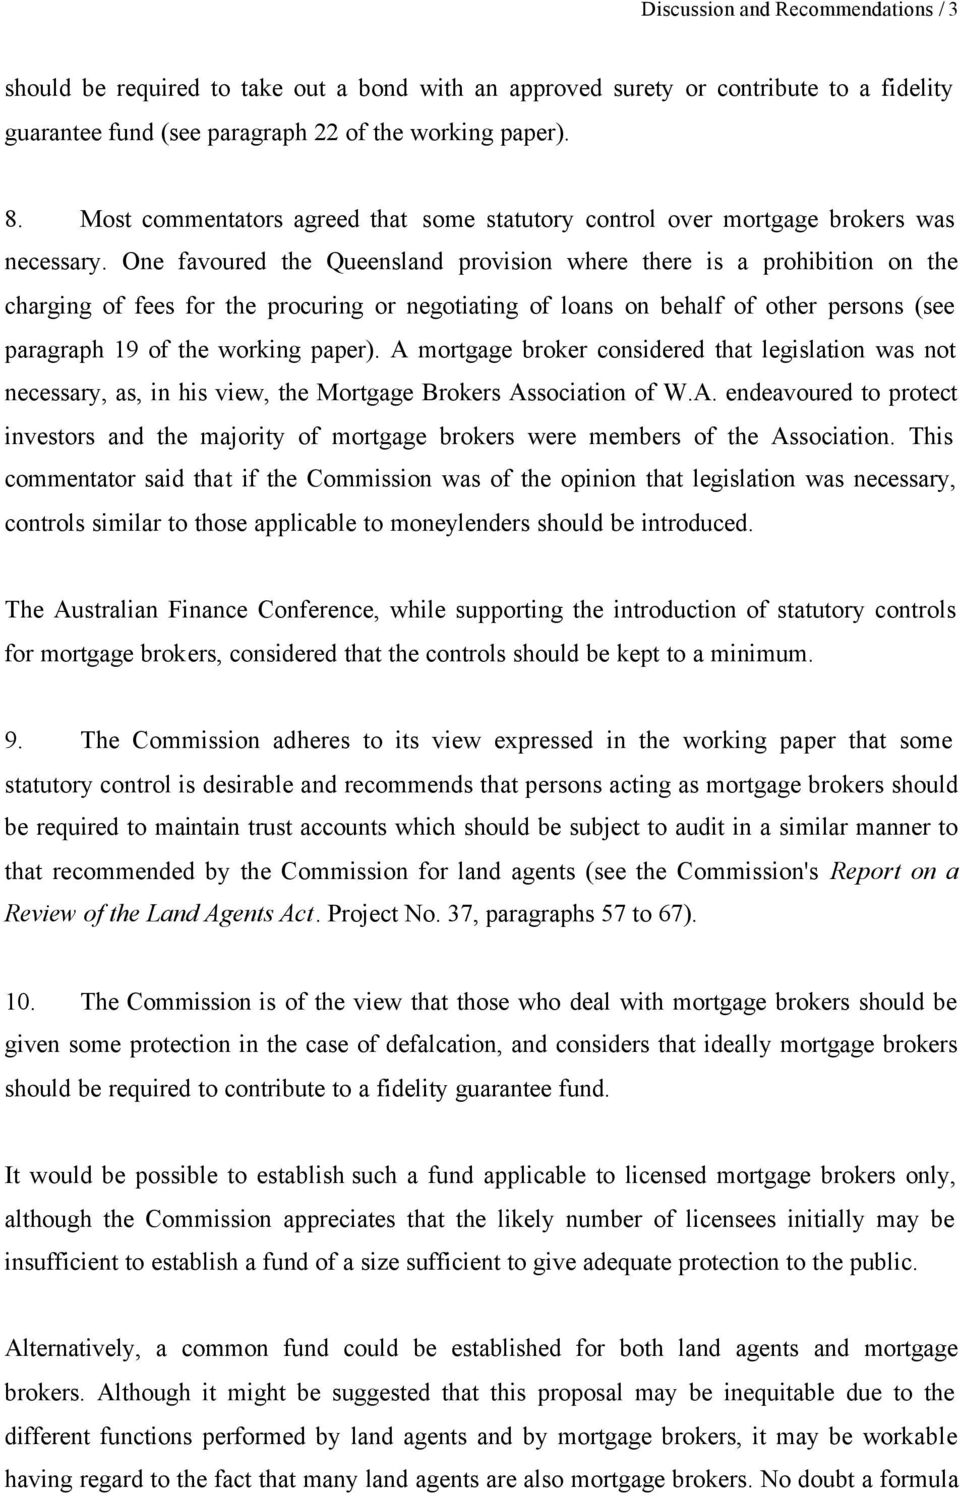 One favoured the Queensland provision where there is a prohibition on the charging of fees for the procuring or negotiating of loans on behalf of other persons (see paragraph 19 of the working paper).